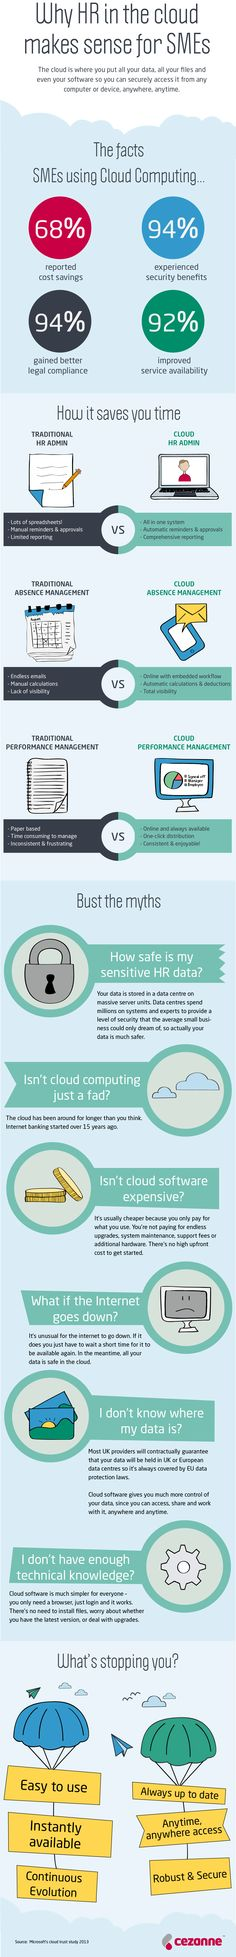 HR and Cloud Computing